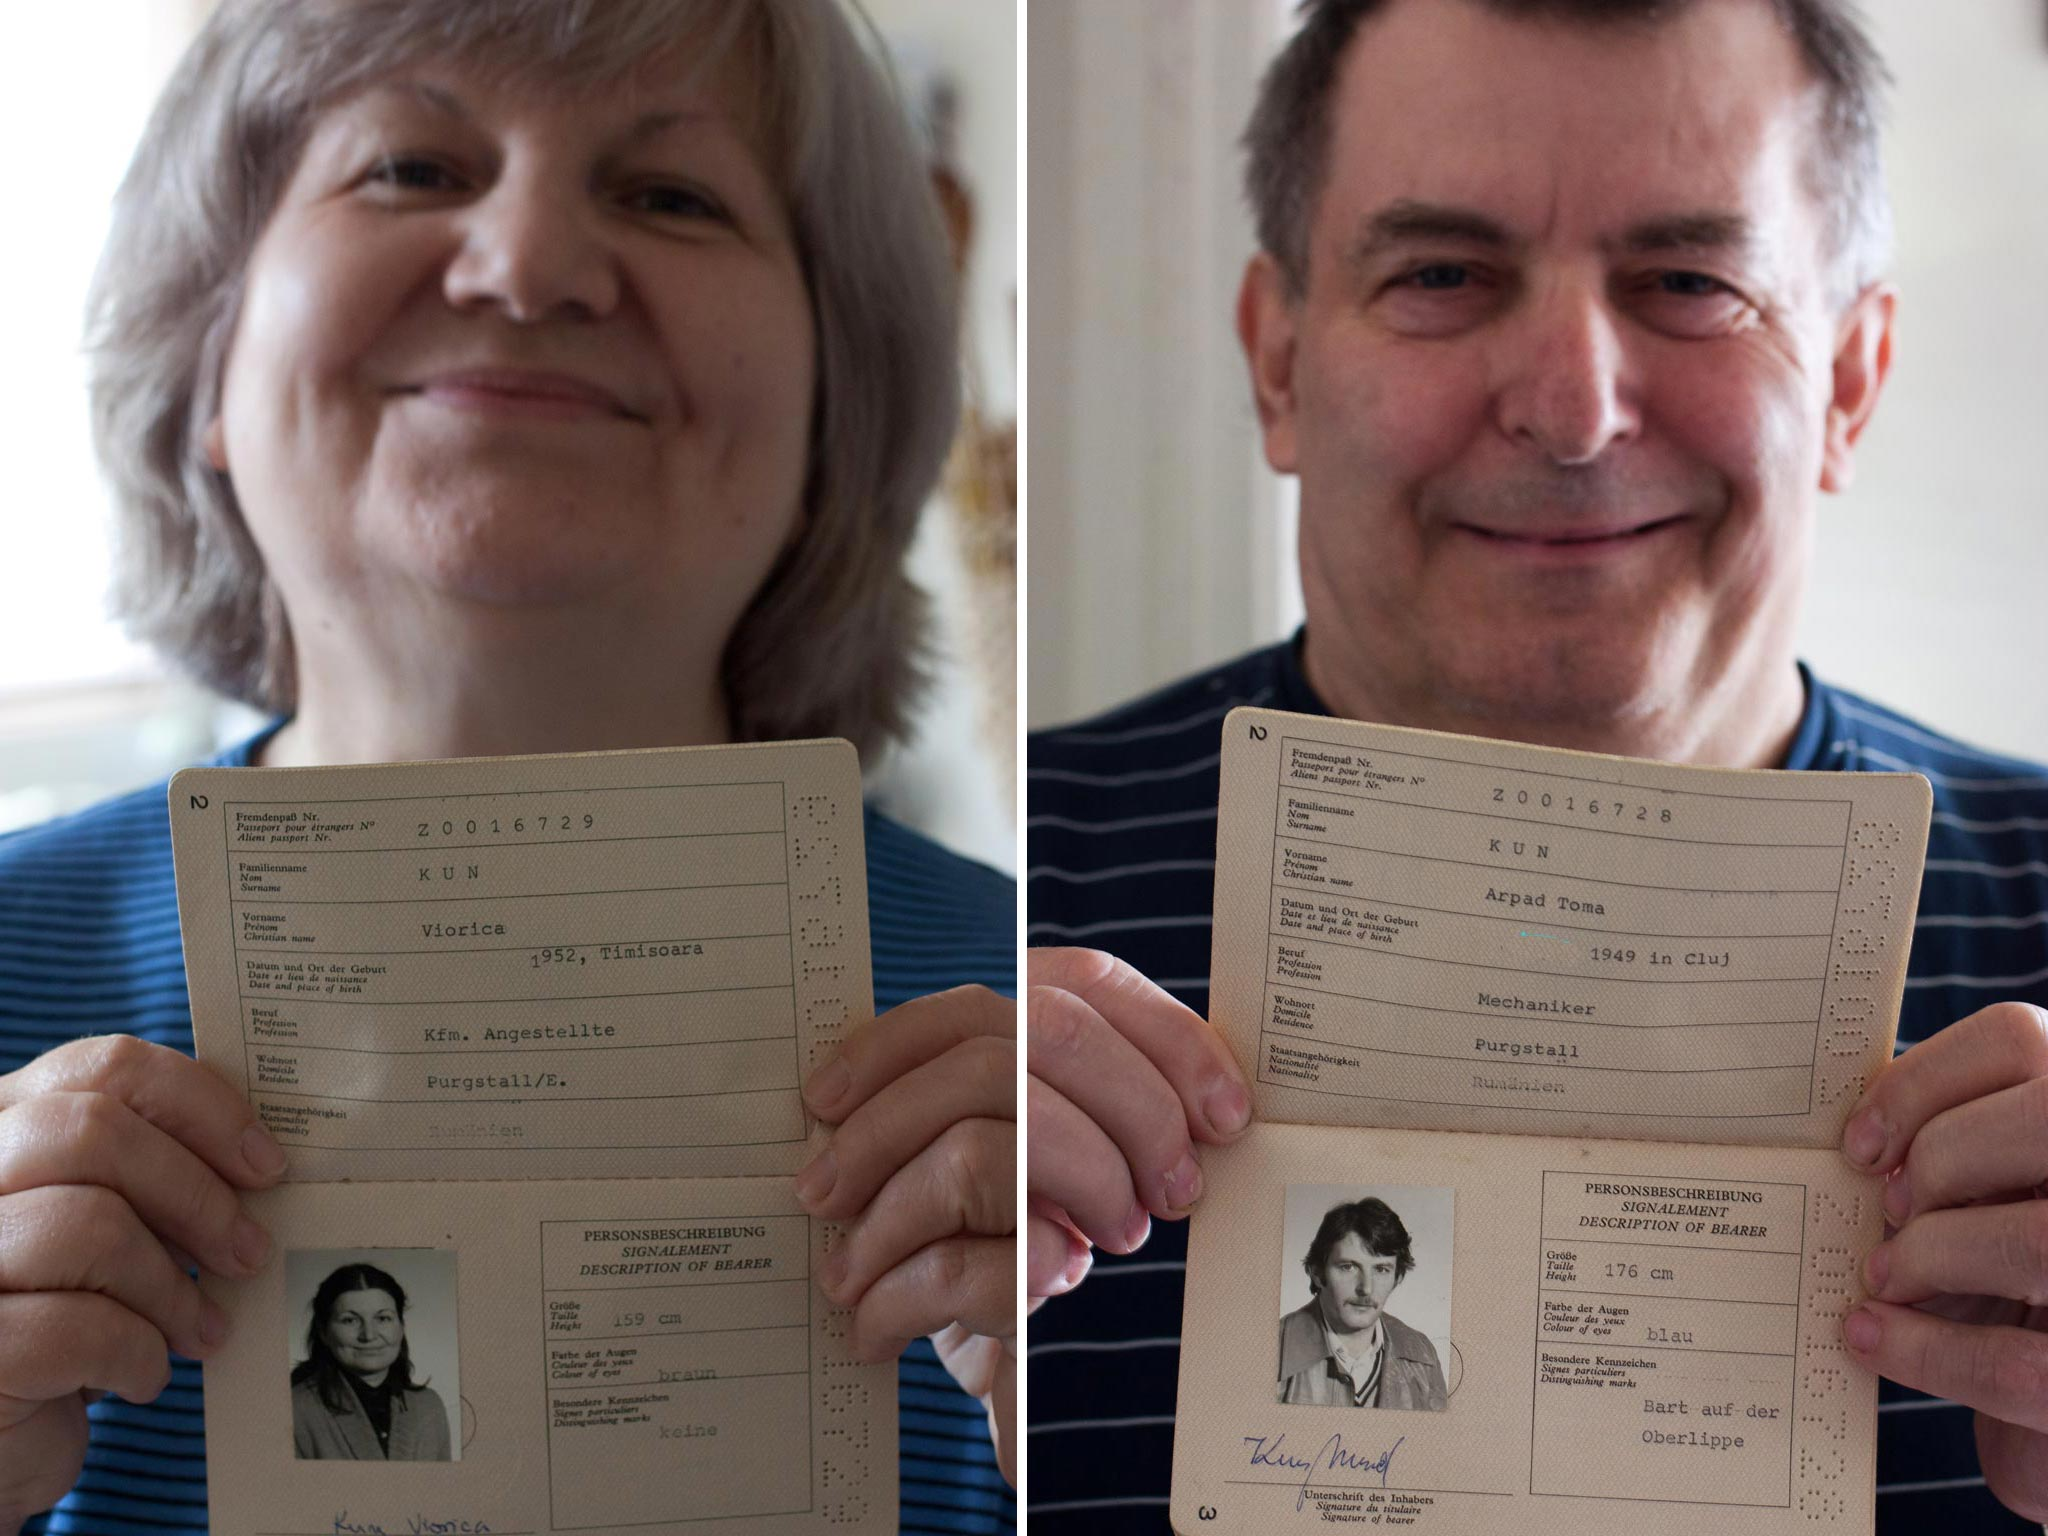 mom and dad in 2011, close ups holding their refugee passports from Austria in 1981